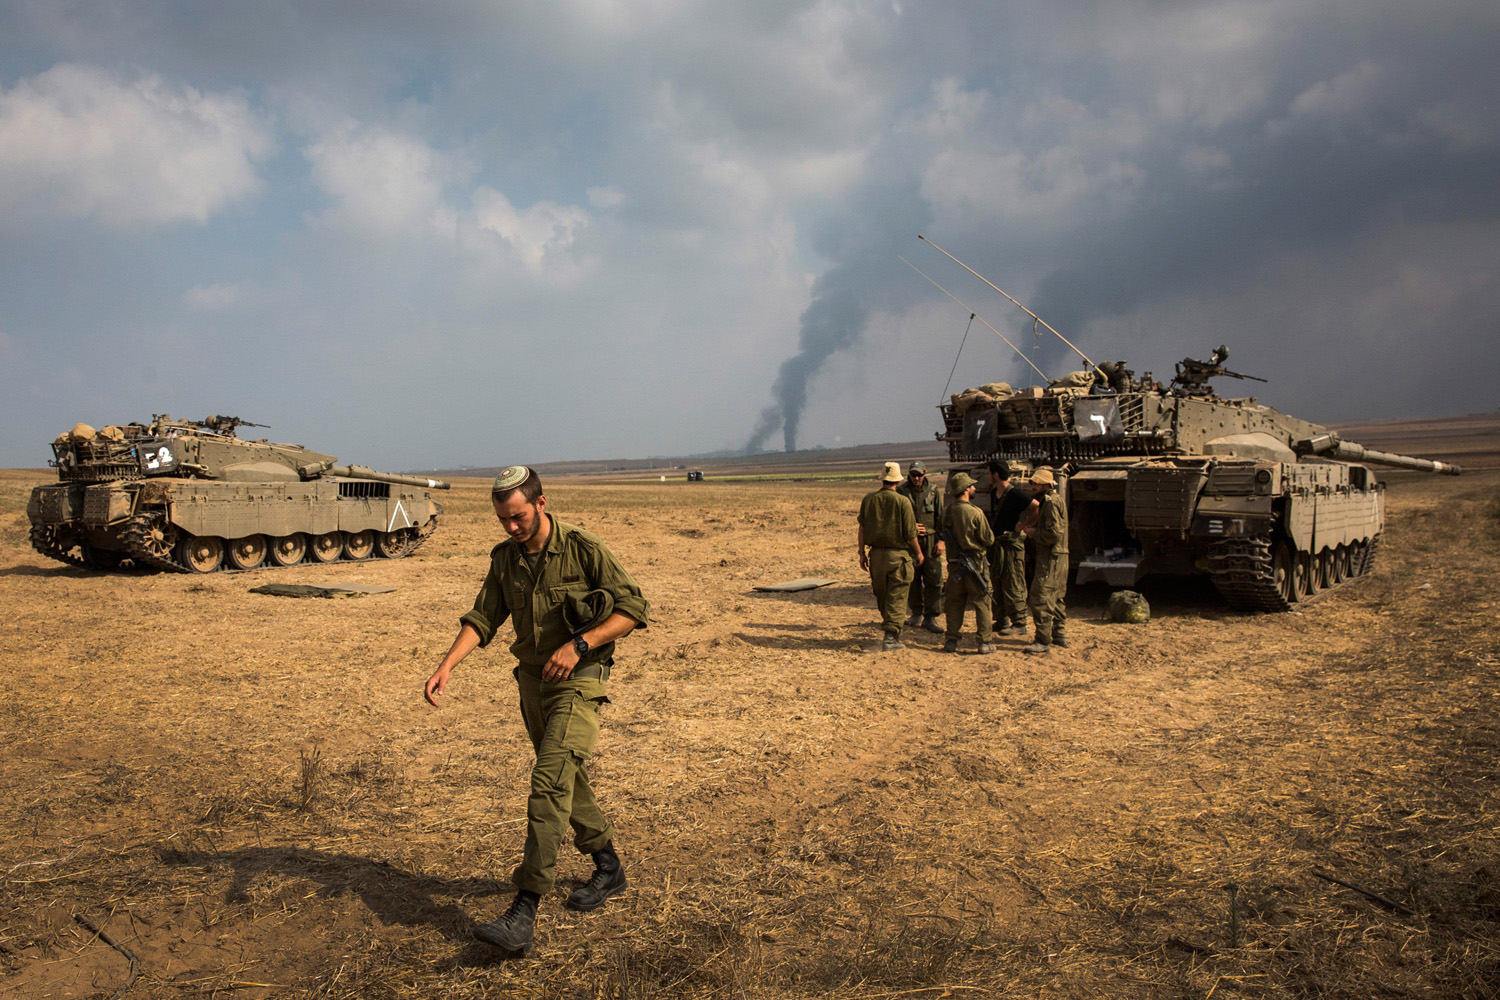 Jul. 22, 2014.  Israeli soldiers stand near their tank while smoke due to airstrikes and shelling rises from Gaza near Sderot, Israel.